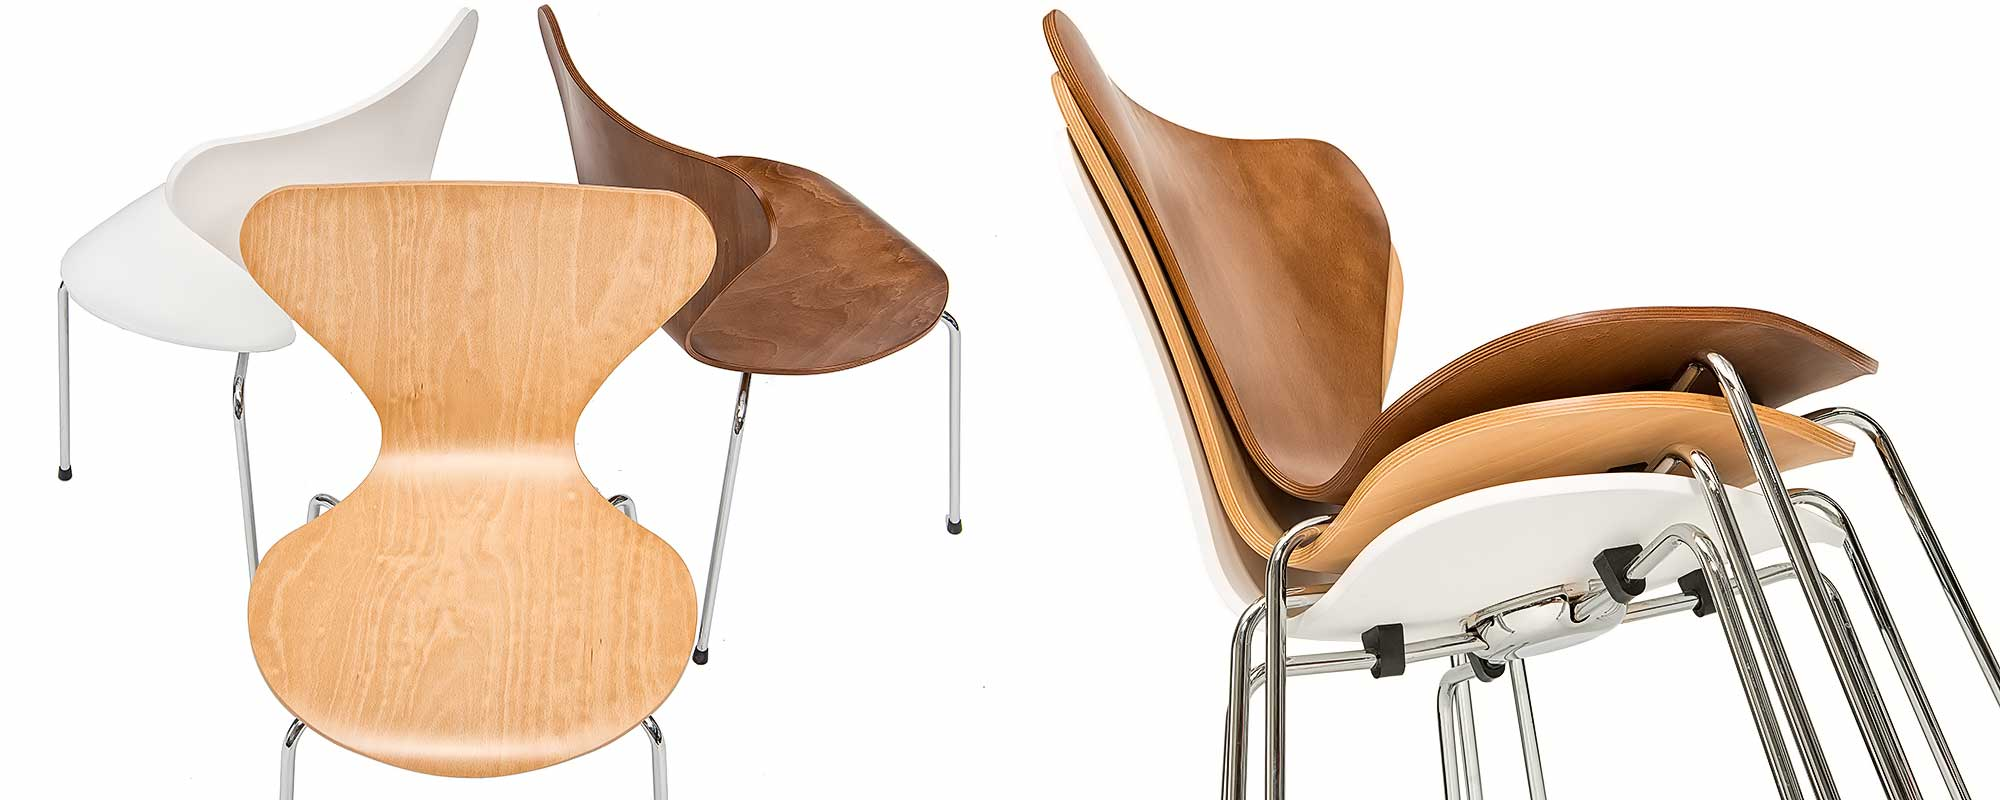 Arne Jacobsen 3107 Chair EYECATCHER Steelform